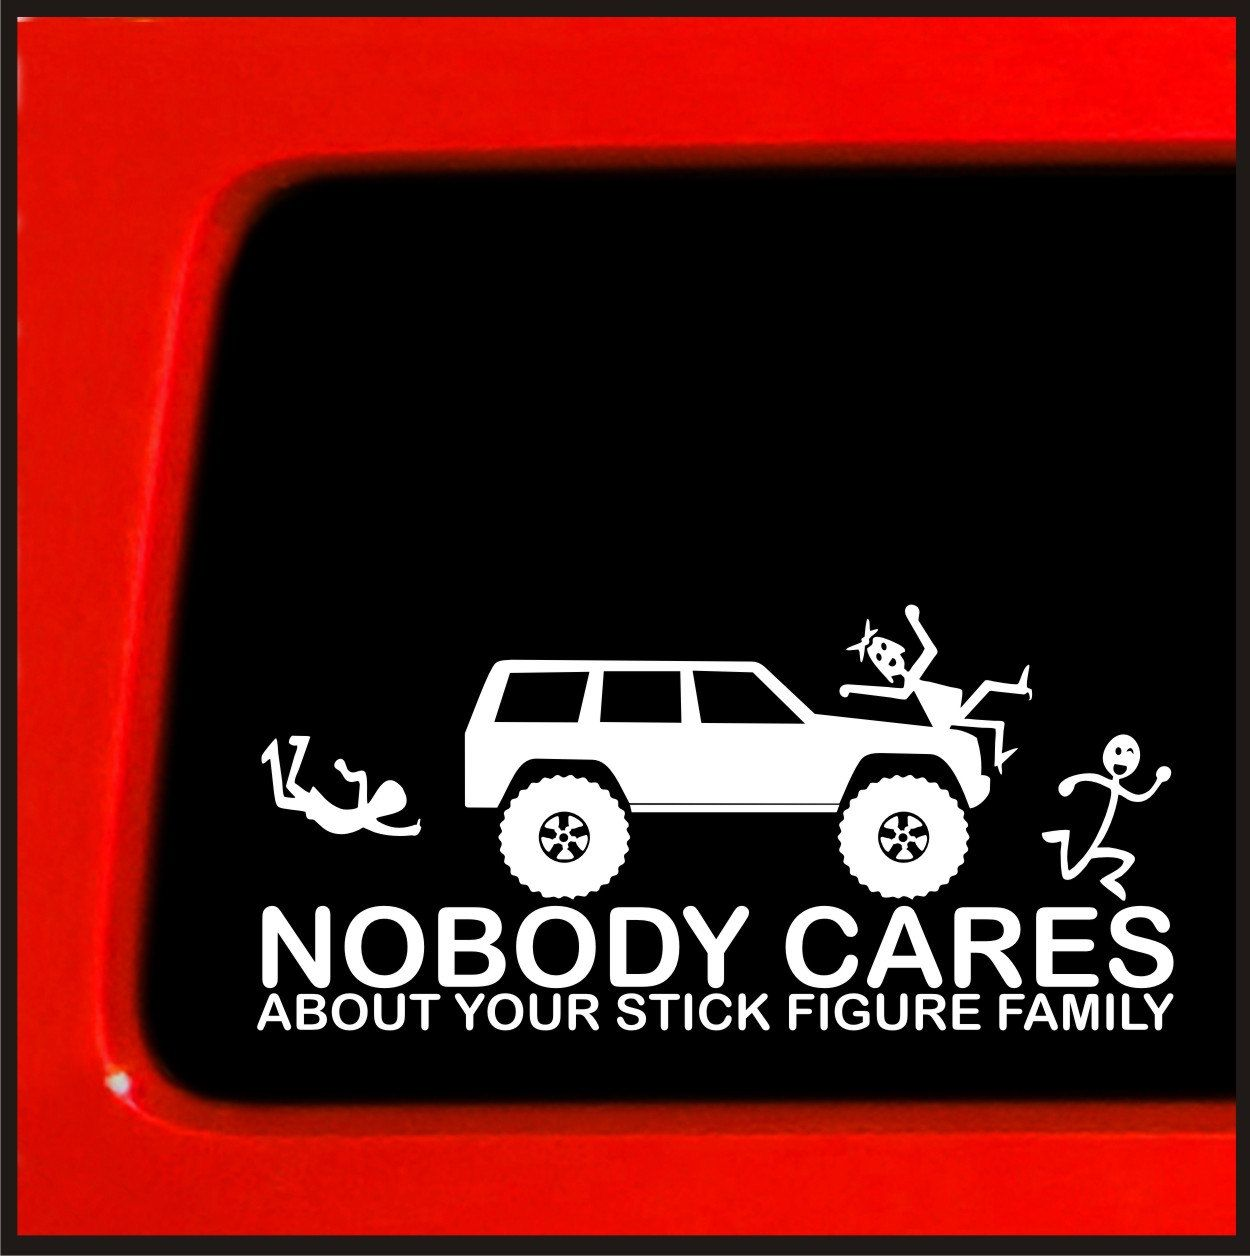 Stick Figure Sticker For Jeep Cherokee Family Nobody Cares Funny - Family decal stickers for carscar truck van vehicle window family figures vinyl decal sticker